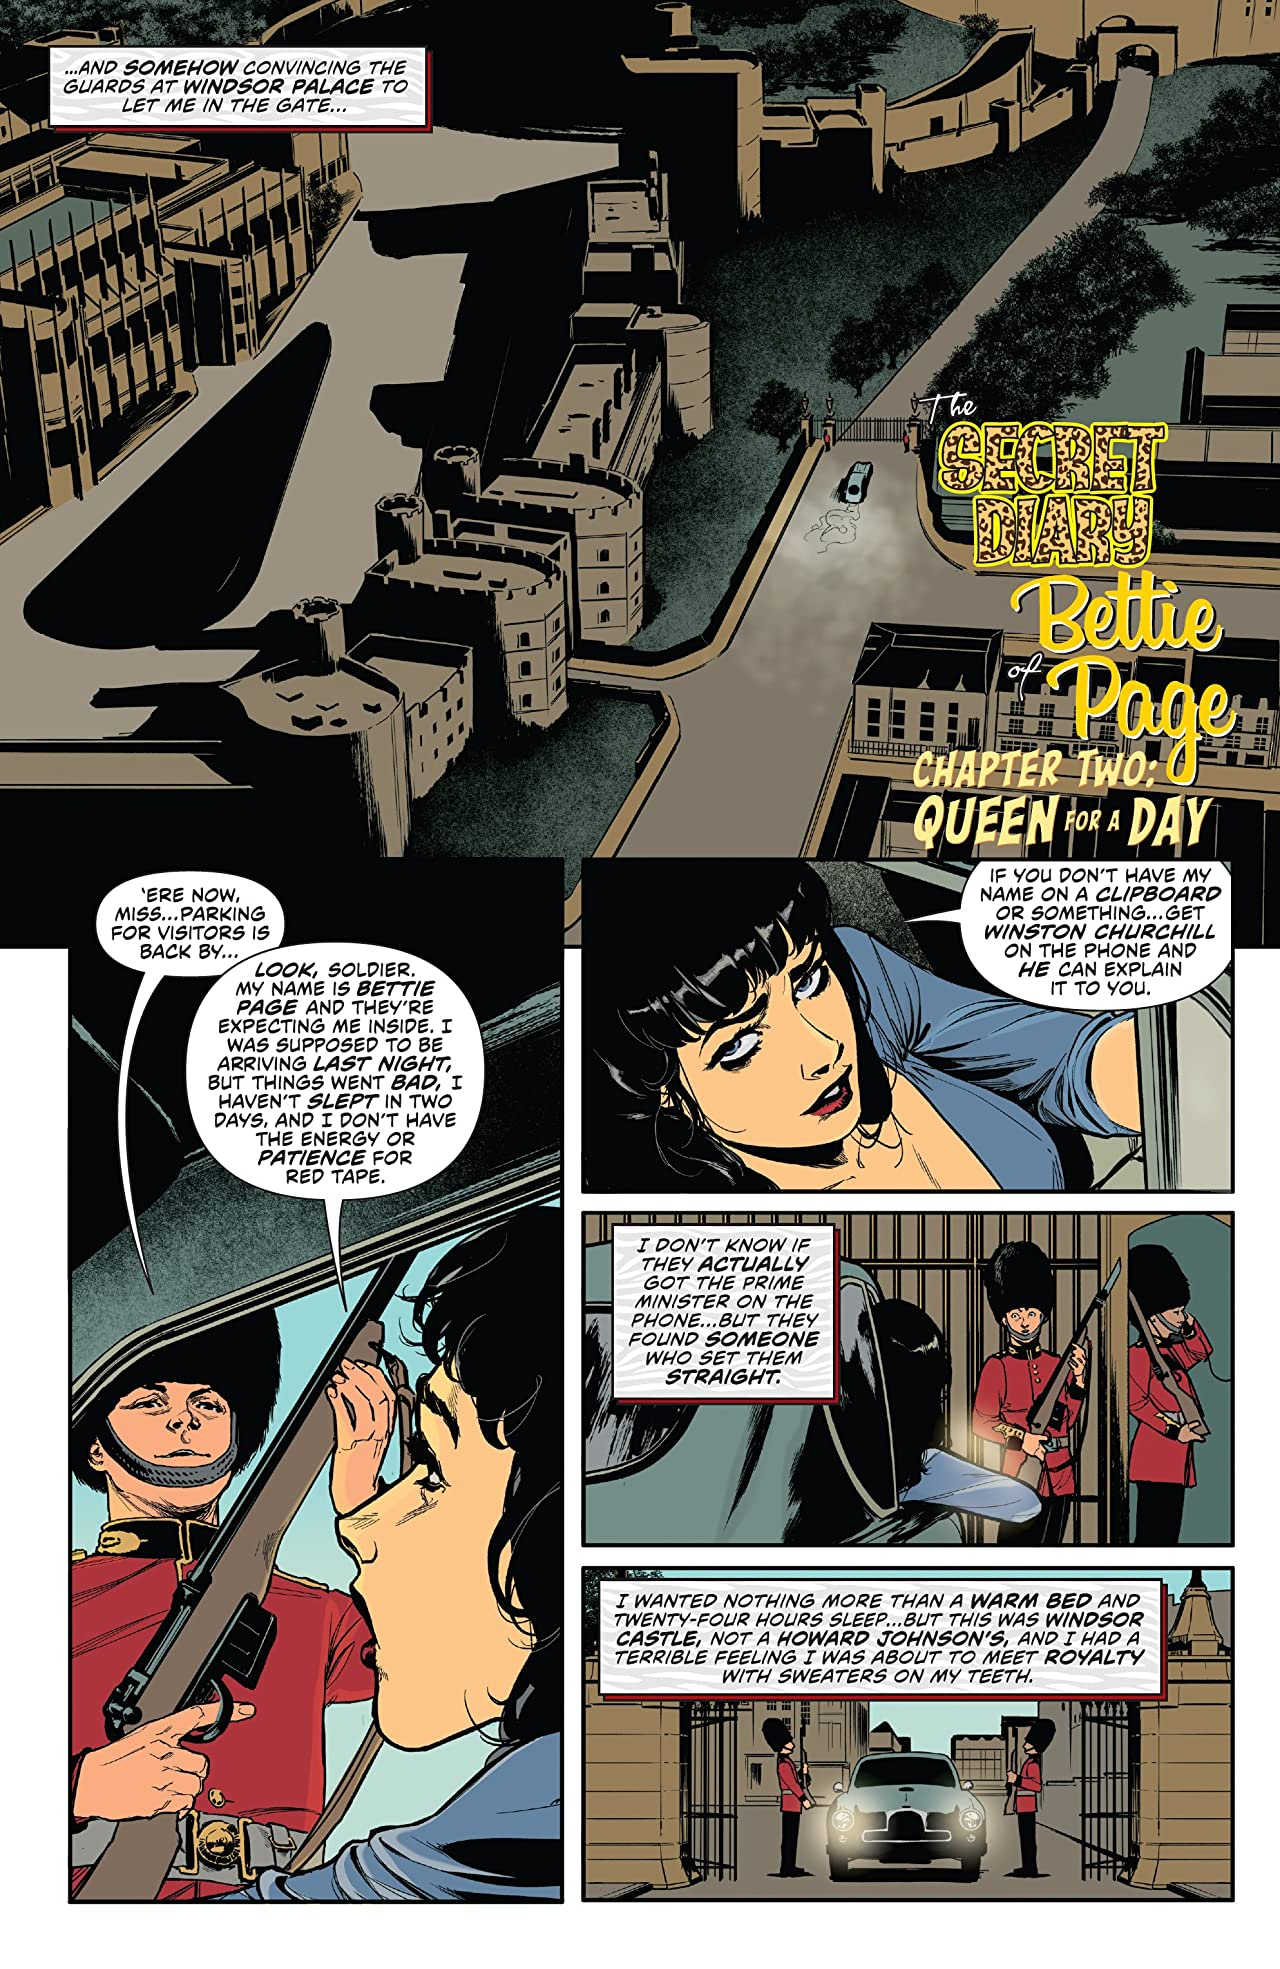 Bettie Page Vol. 2 #2